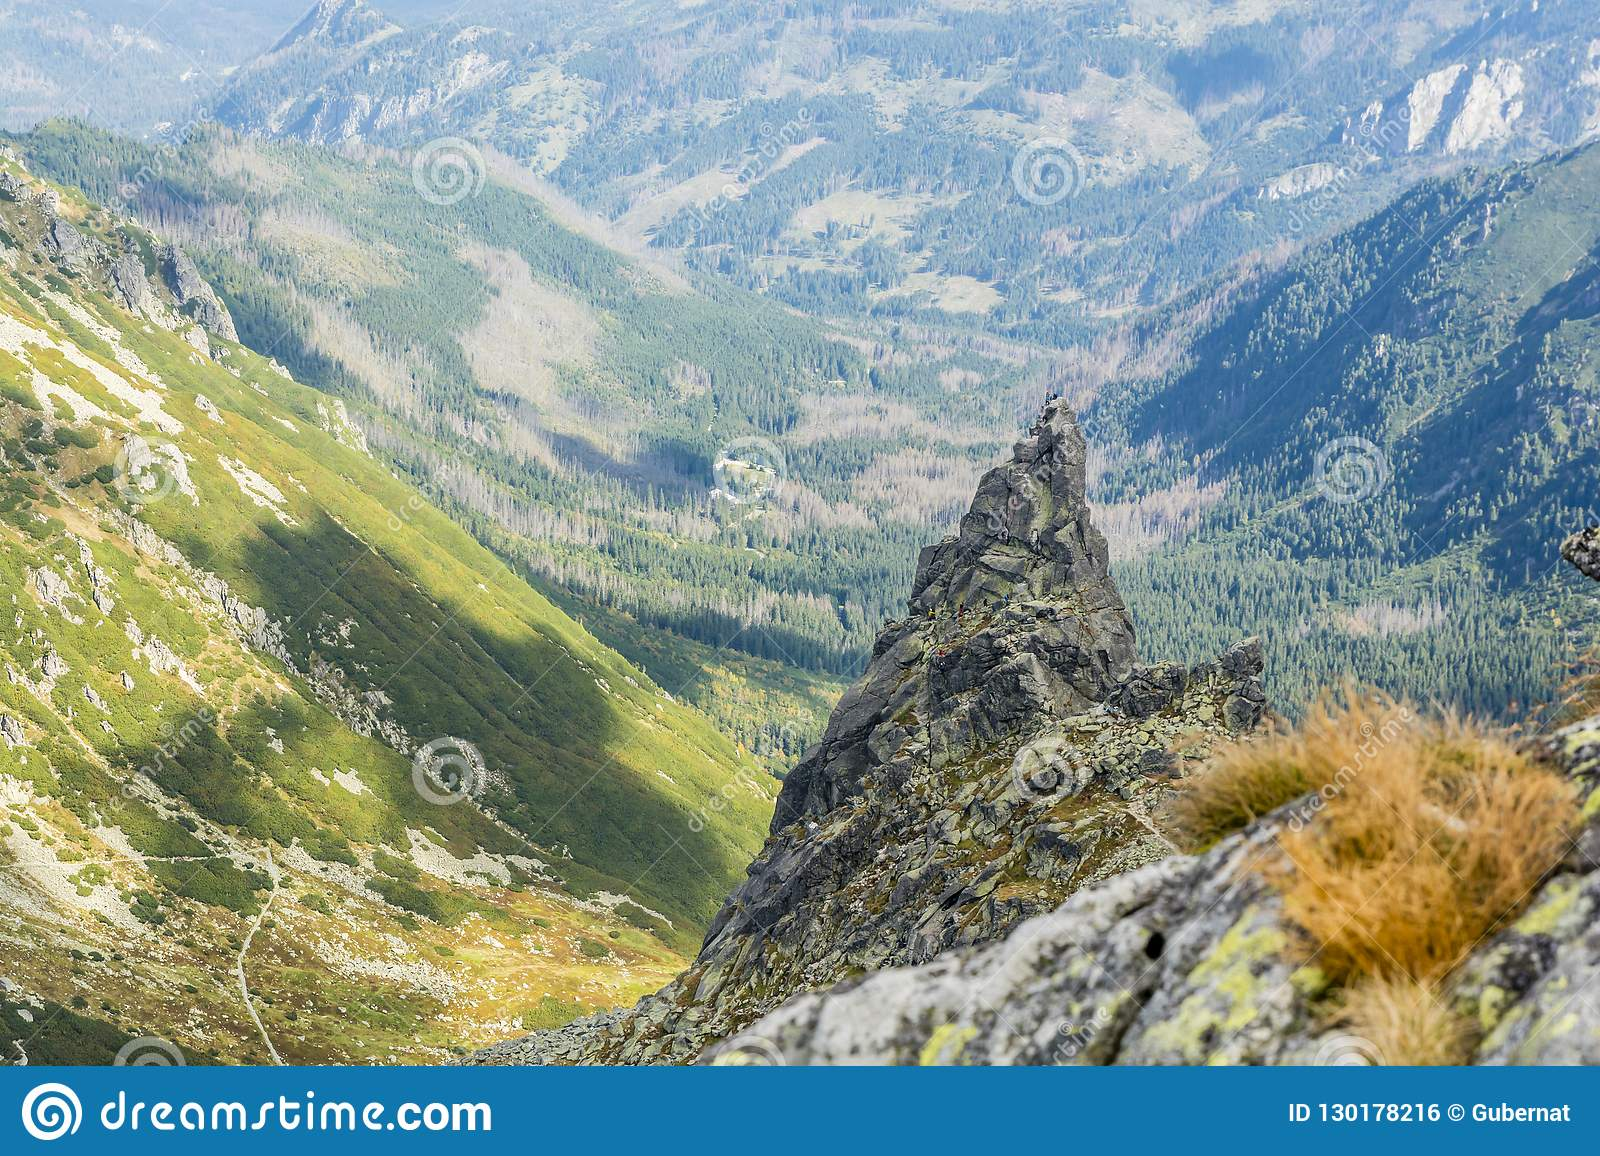 Climbers and mountain guides with clients while climbing the popular Mnich Monk peak in the Polish Tatras.